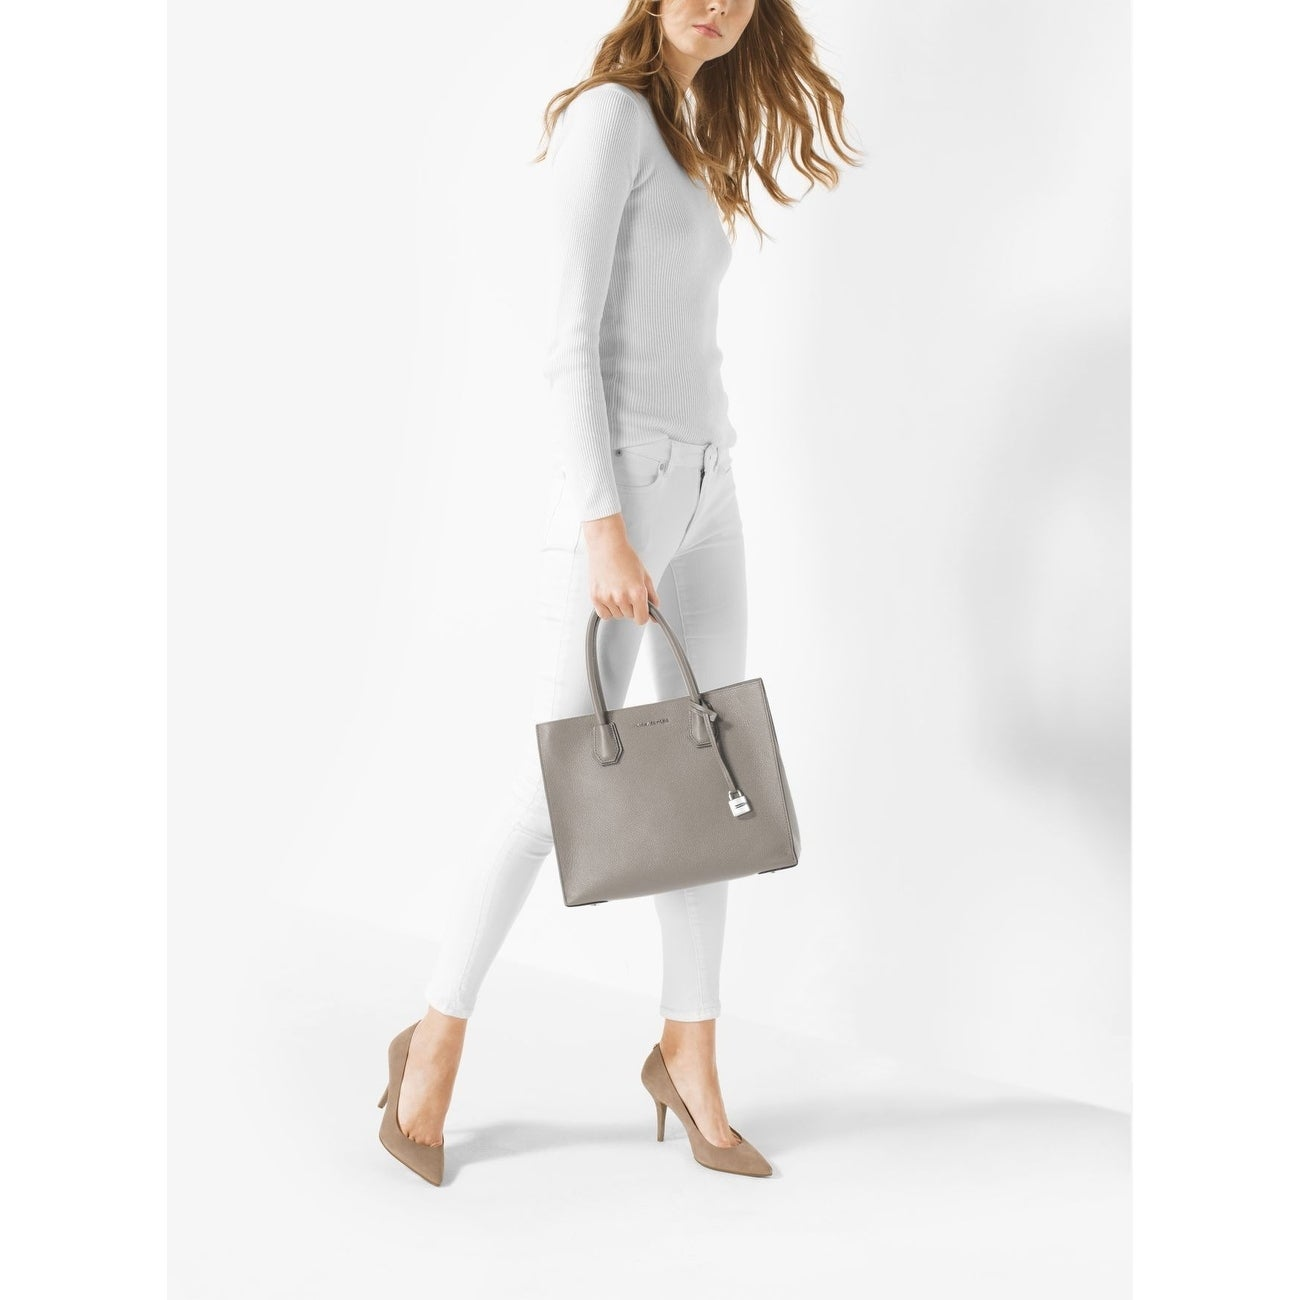 1c30e6fe0a42d5 Shop MICHAEL Michael Kors Mercer Lg Conv Tote pearl grey - Free Shipping  Today - Overstock - 17874989